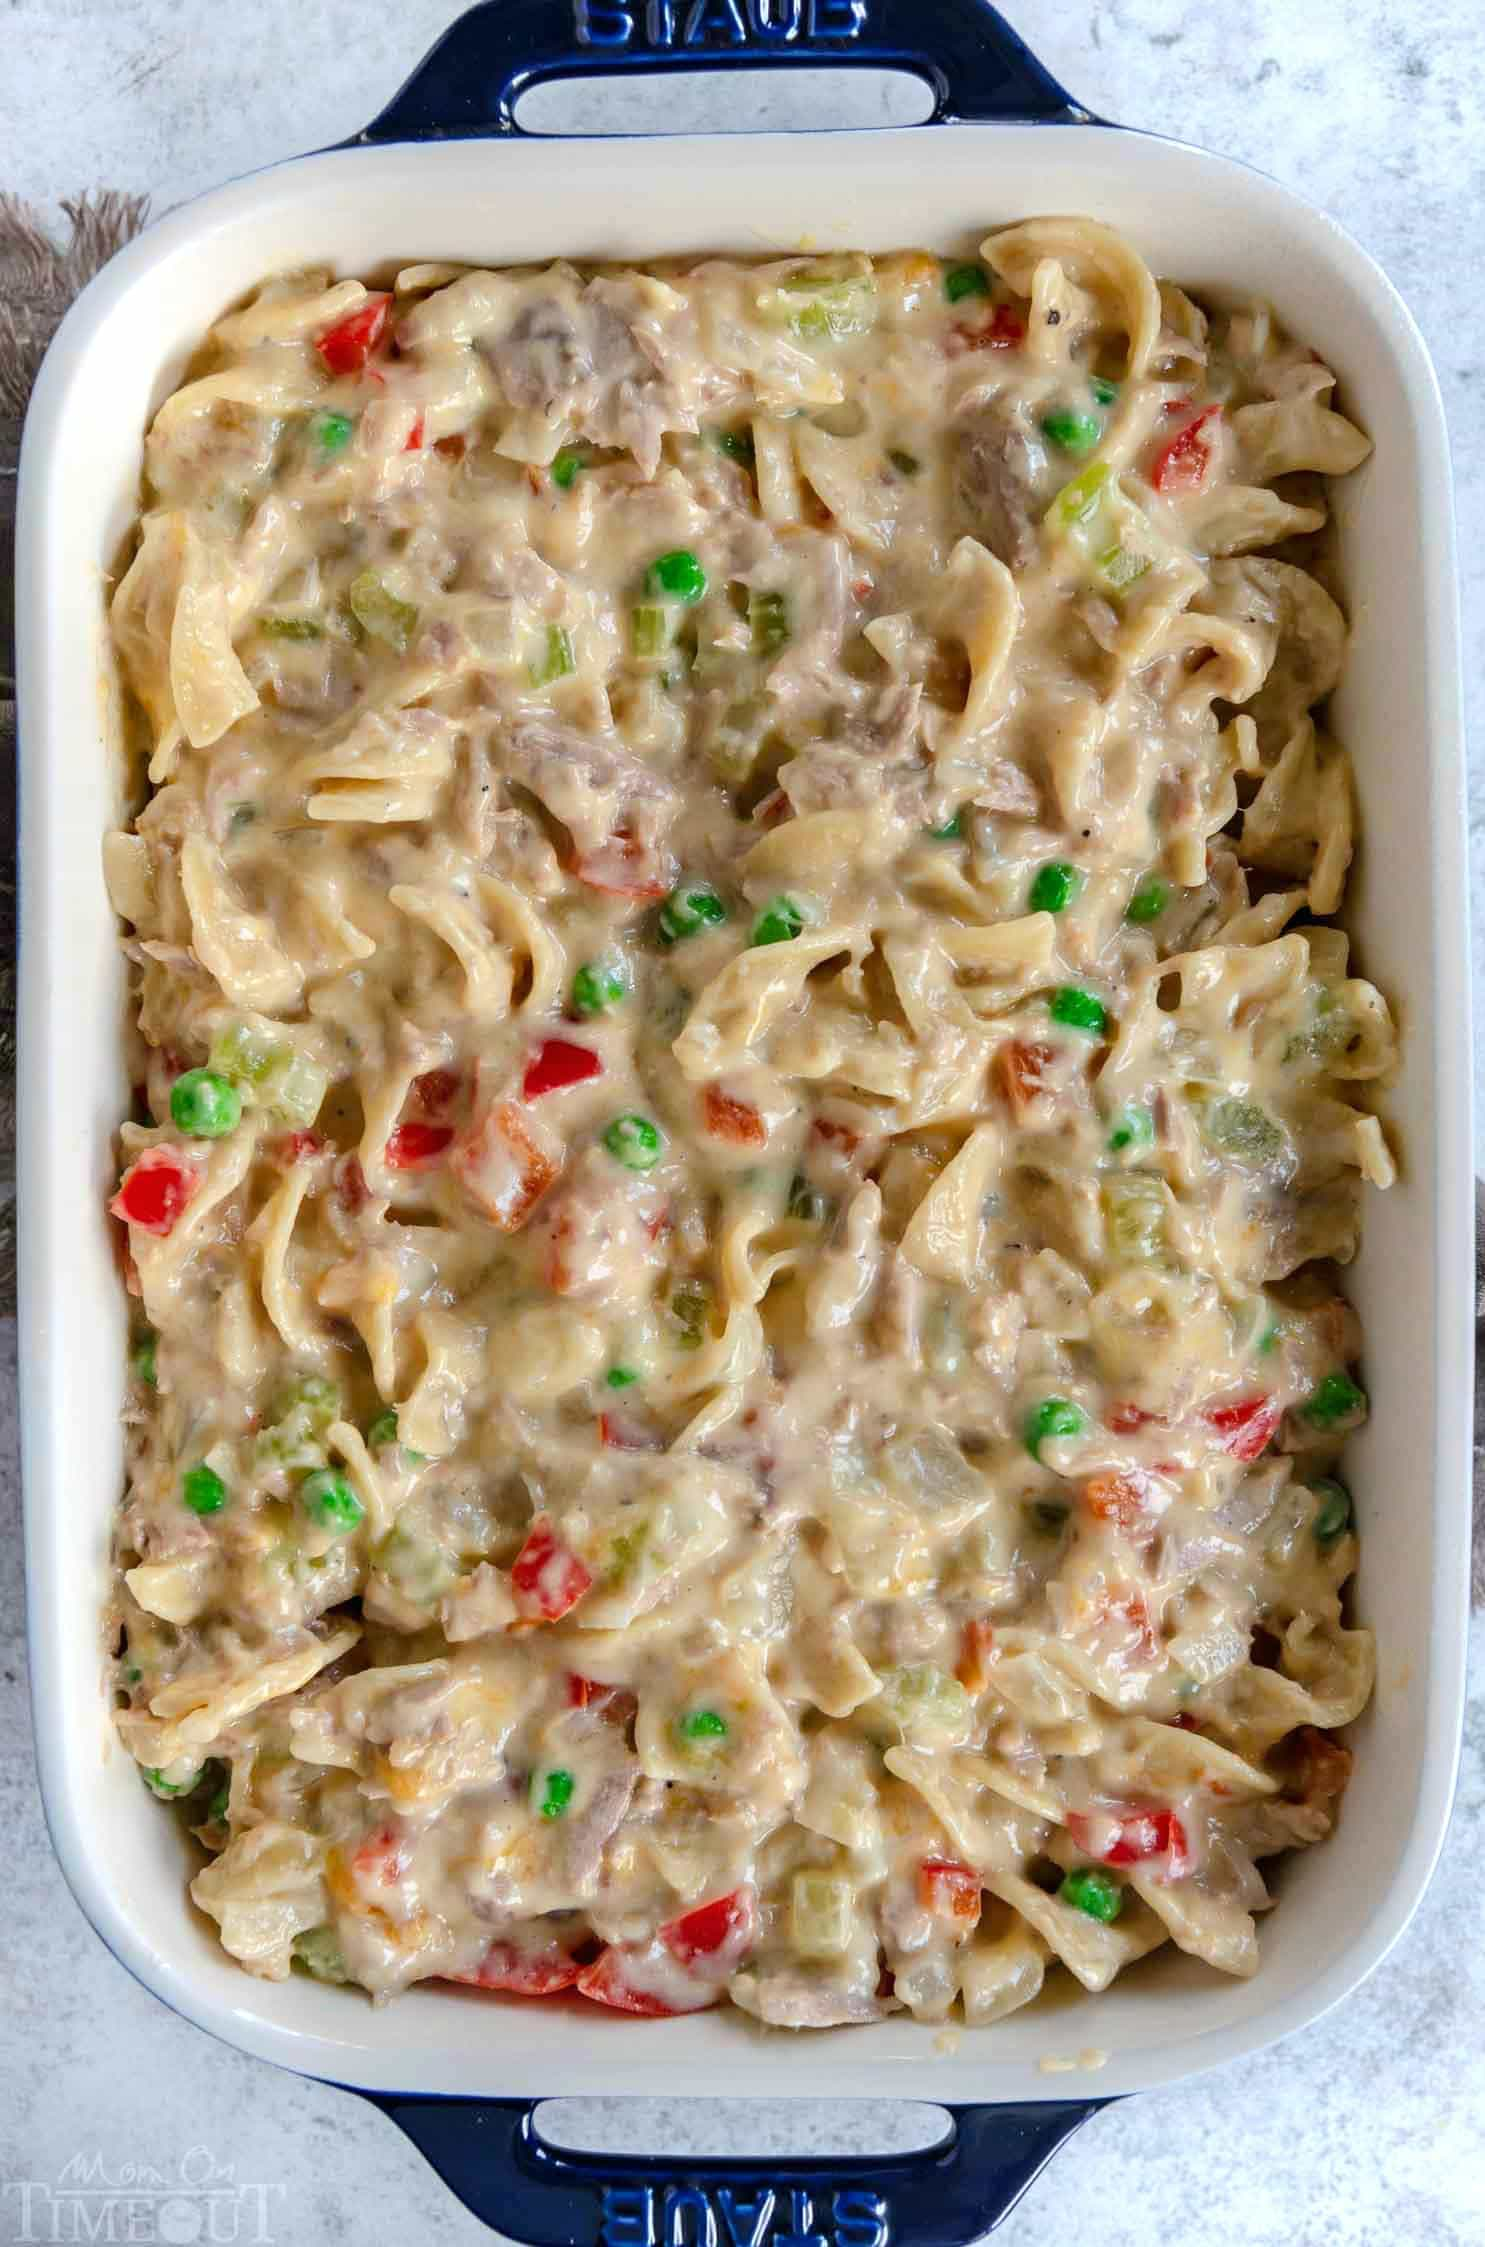 easy-tuna-casserole-in baking-dish